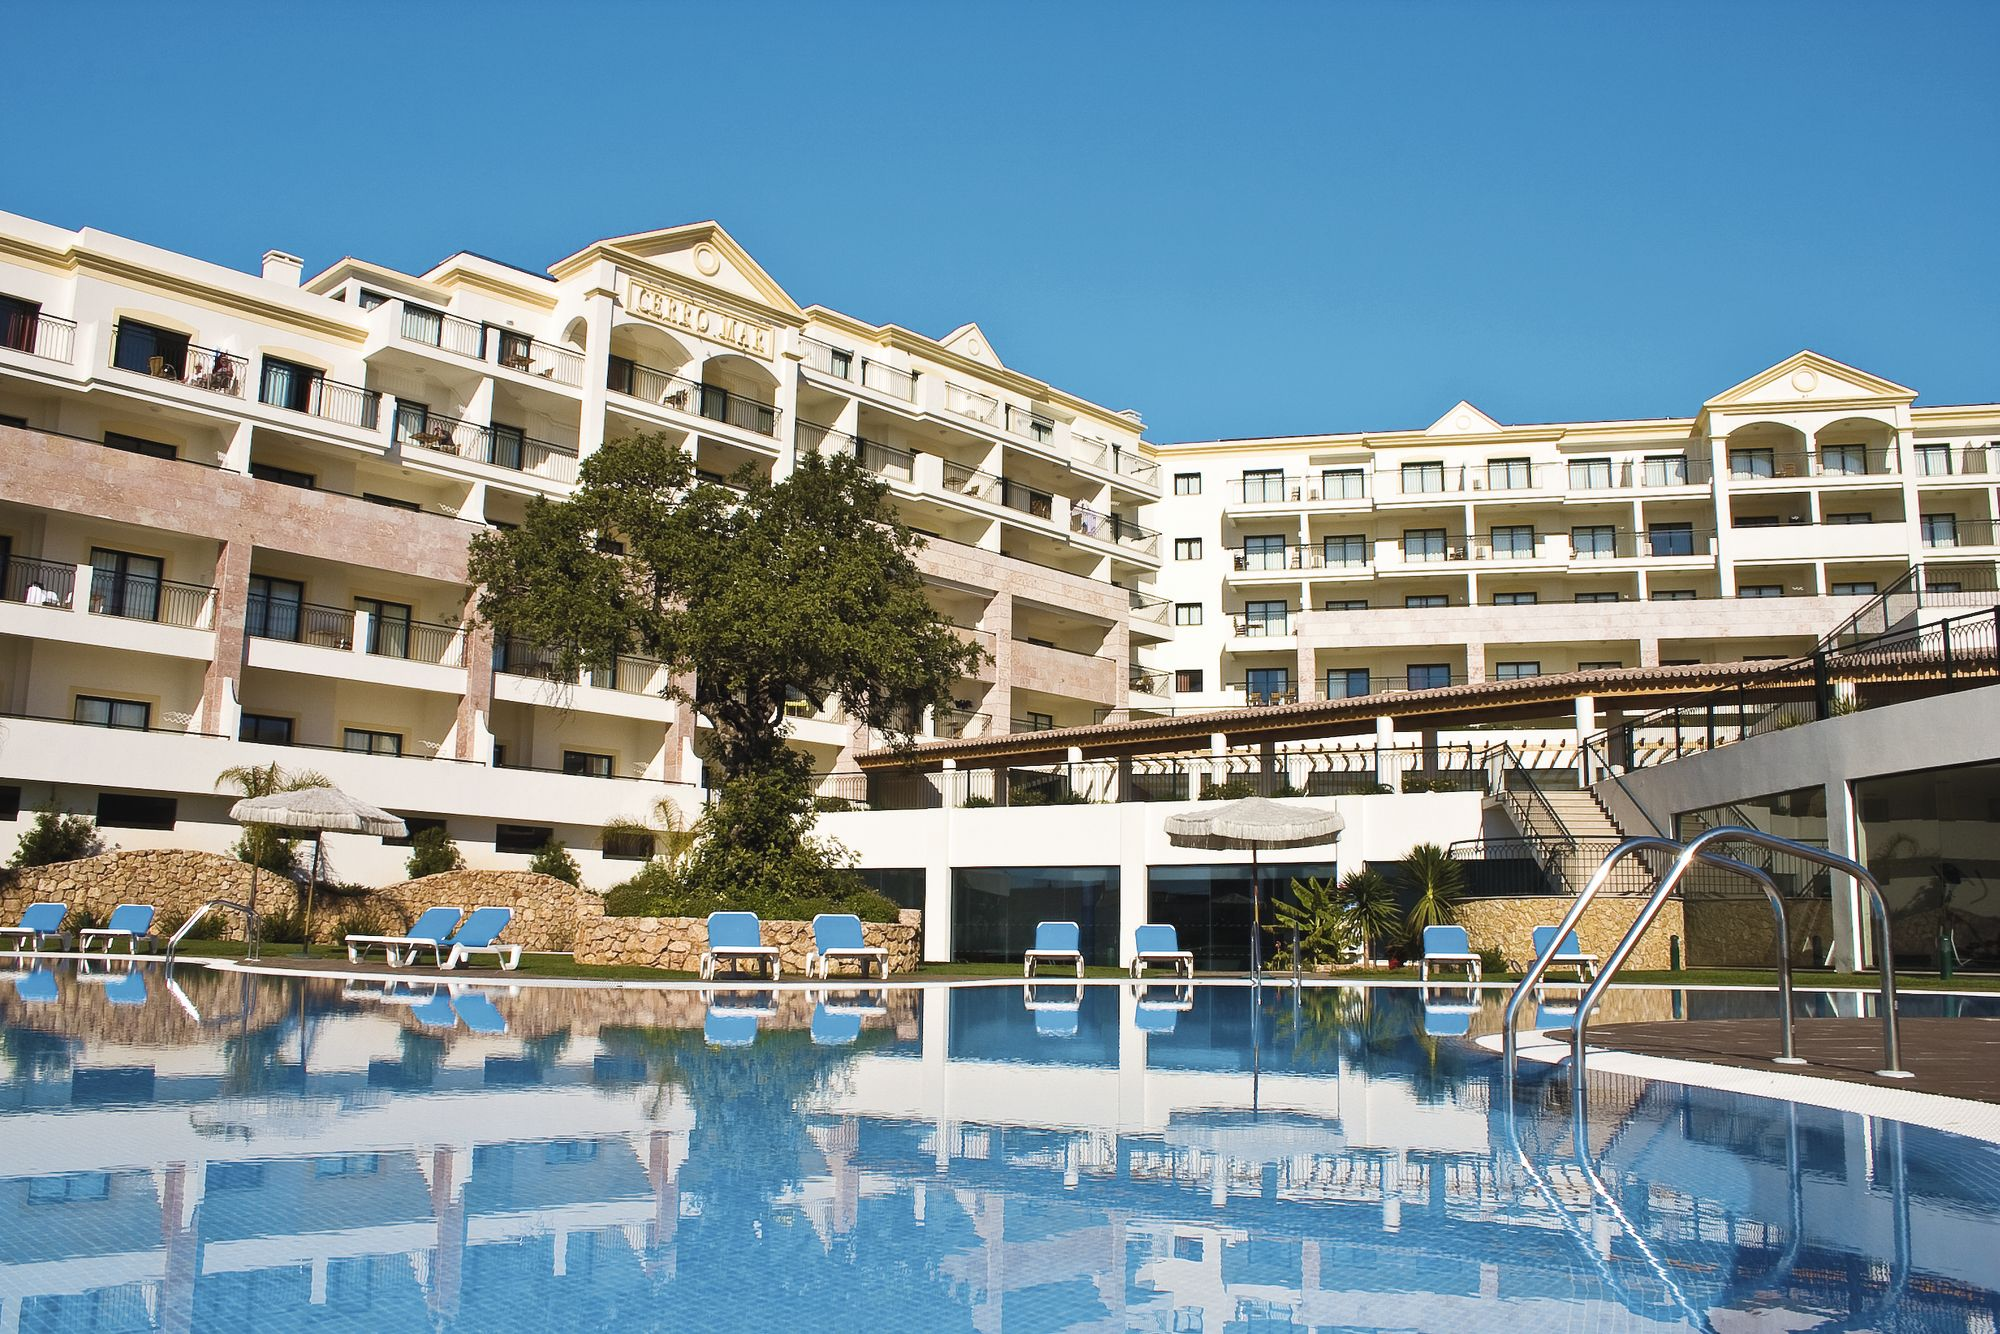 Holiday to Cerro Mar Garden Aparthotel in ALBUFEIRA (PORTUGAL) for 3 nights (SC) departing from manchester on 06 May